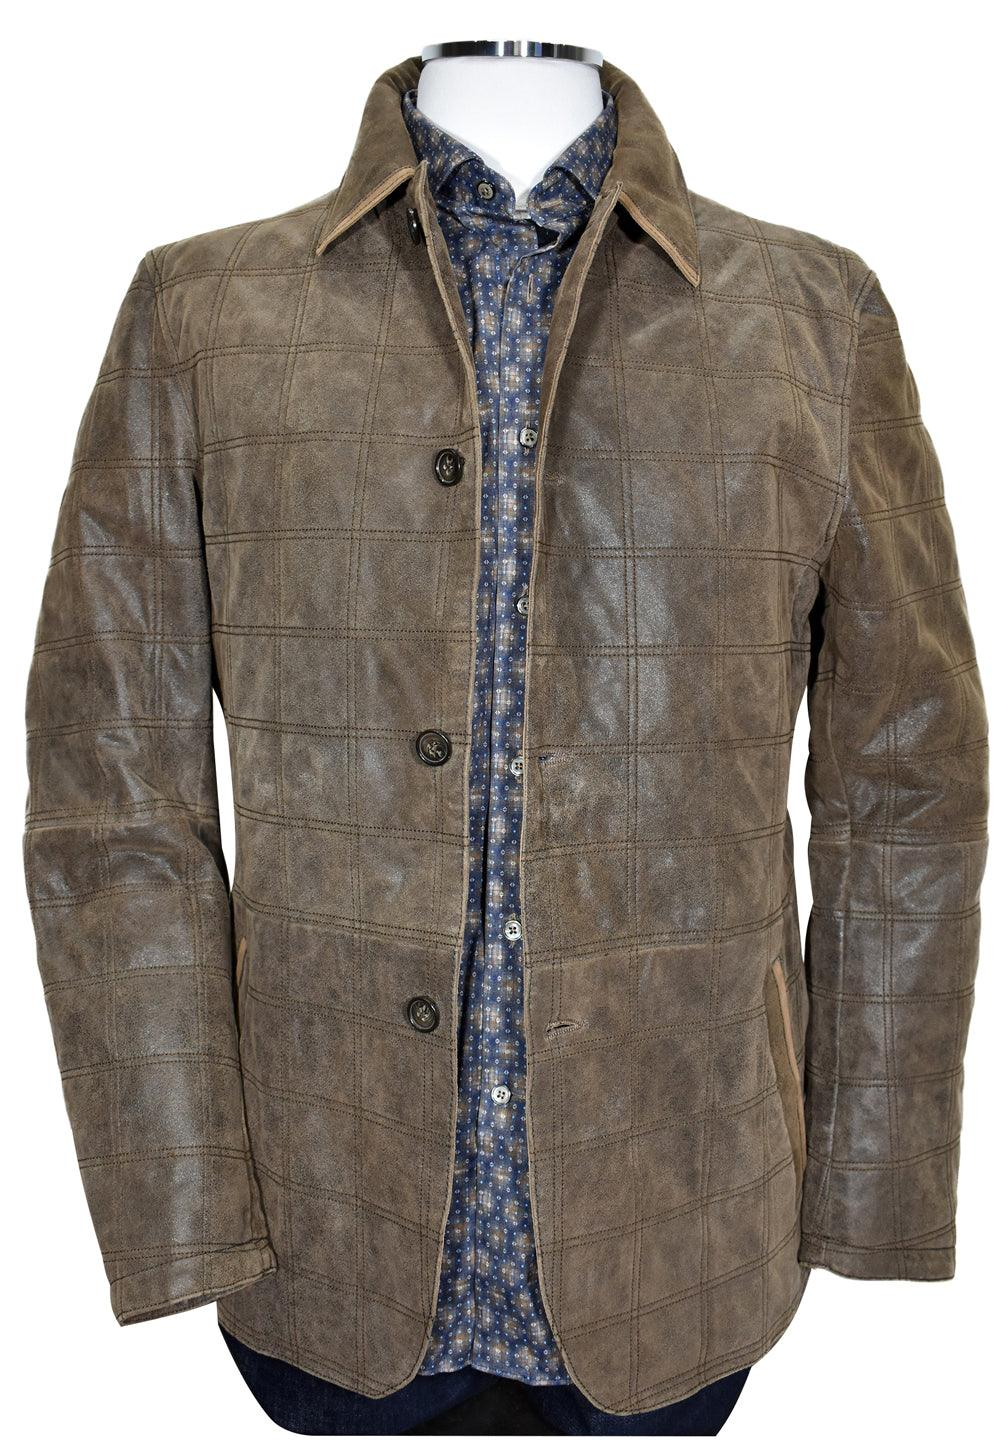 Outstanding, unique style in this sueded leather car coat with button front closure and unique plaid stitching. Moderate weight, classic side slash pockets and thigh length.  Suede Leather Car Coat  Full button front style. Plaid cross texture stitching adds style. Moderate weight for a thinner jacket. Perfect for Fall for warmth and layering. Thigh length. Polo style collar with contrast edge detail. Modern Fit.